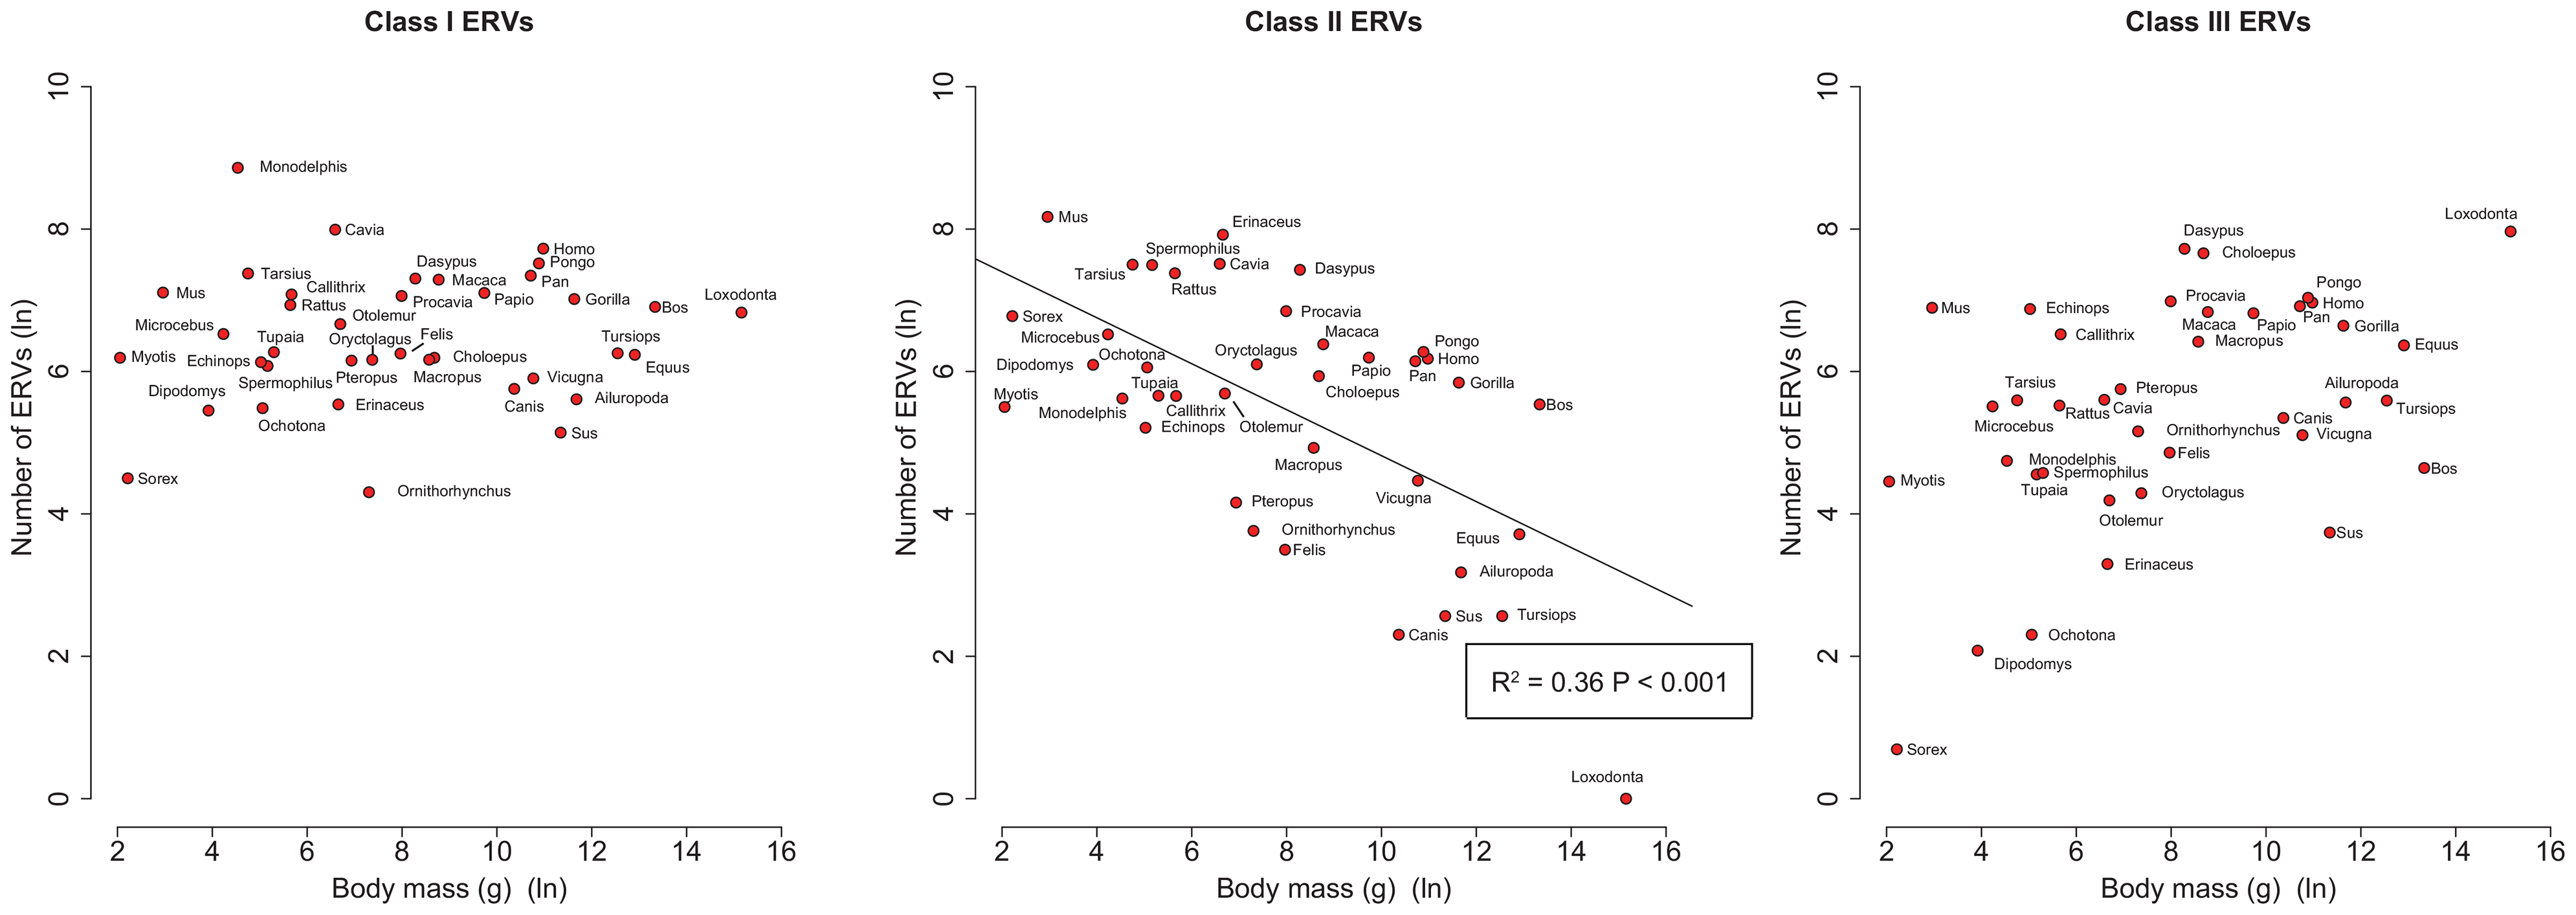 Correlations of number of ERVs against body mass (both log-transformed) by ERV class.